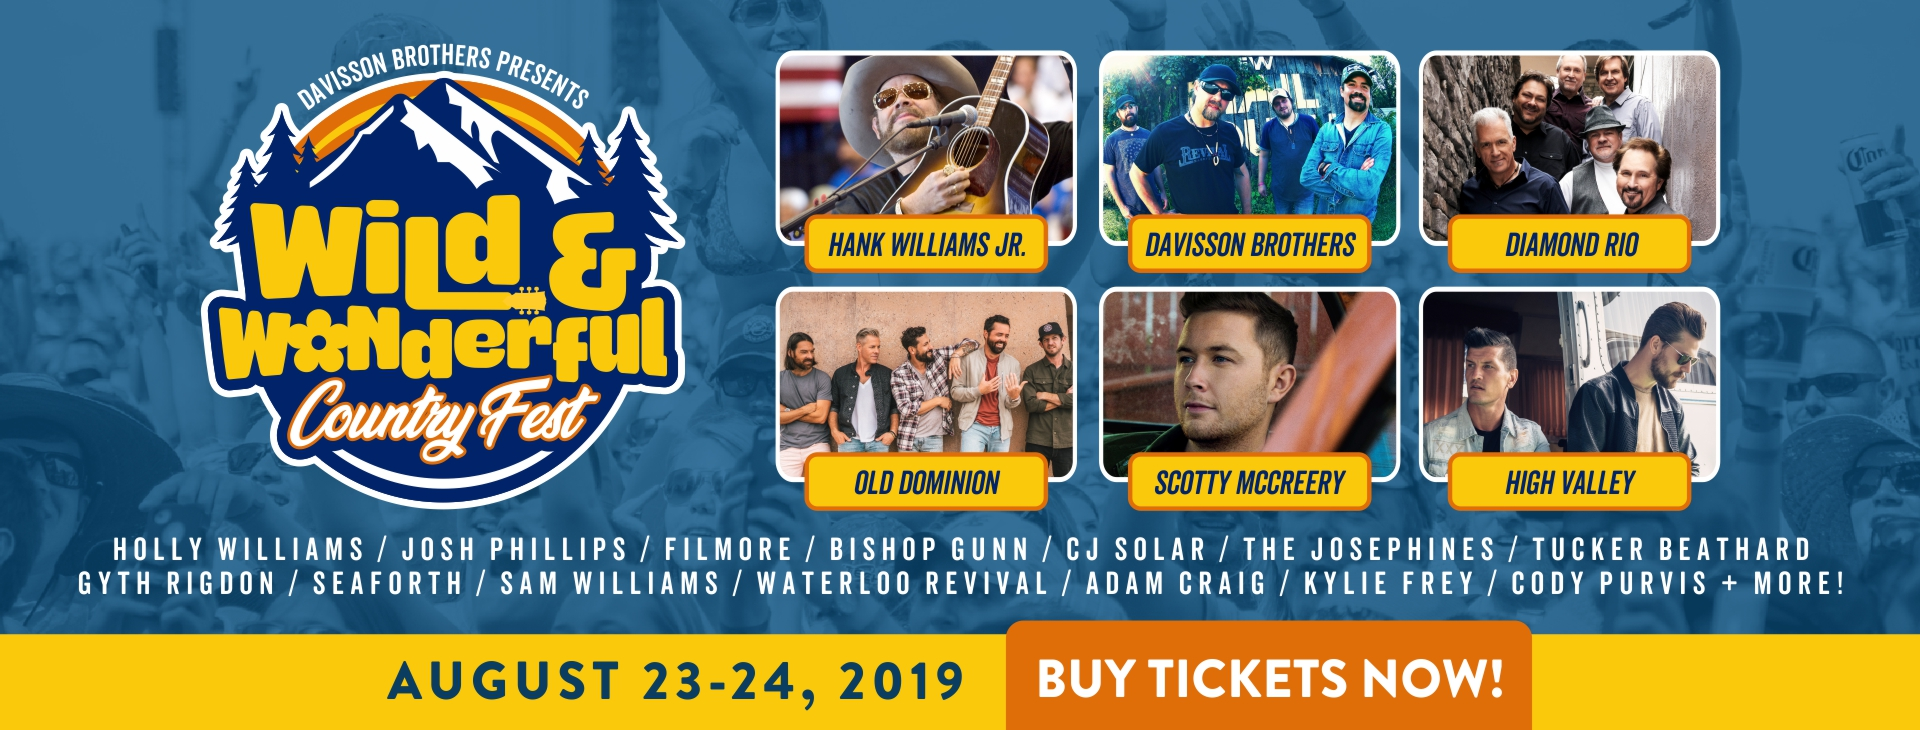 Wild and Wonderful Country Music Fes